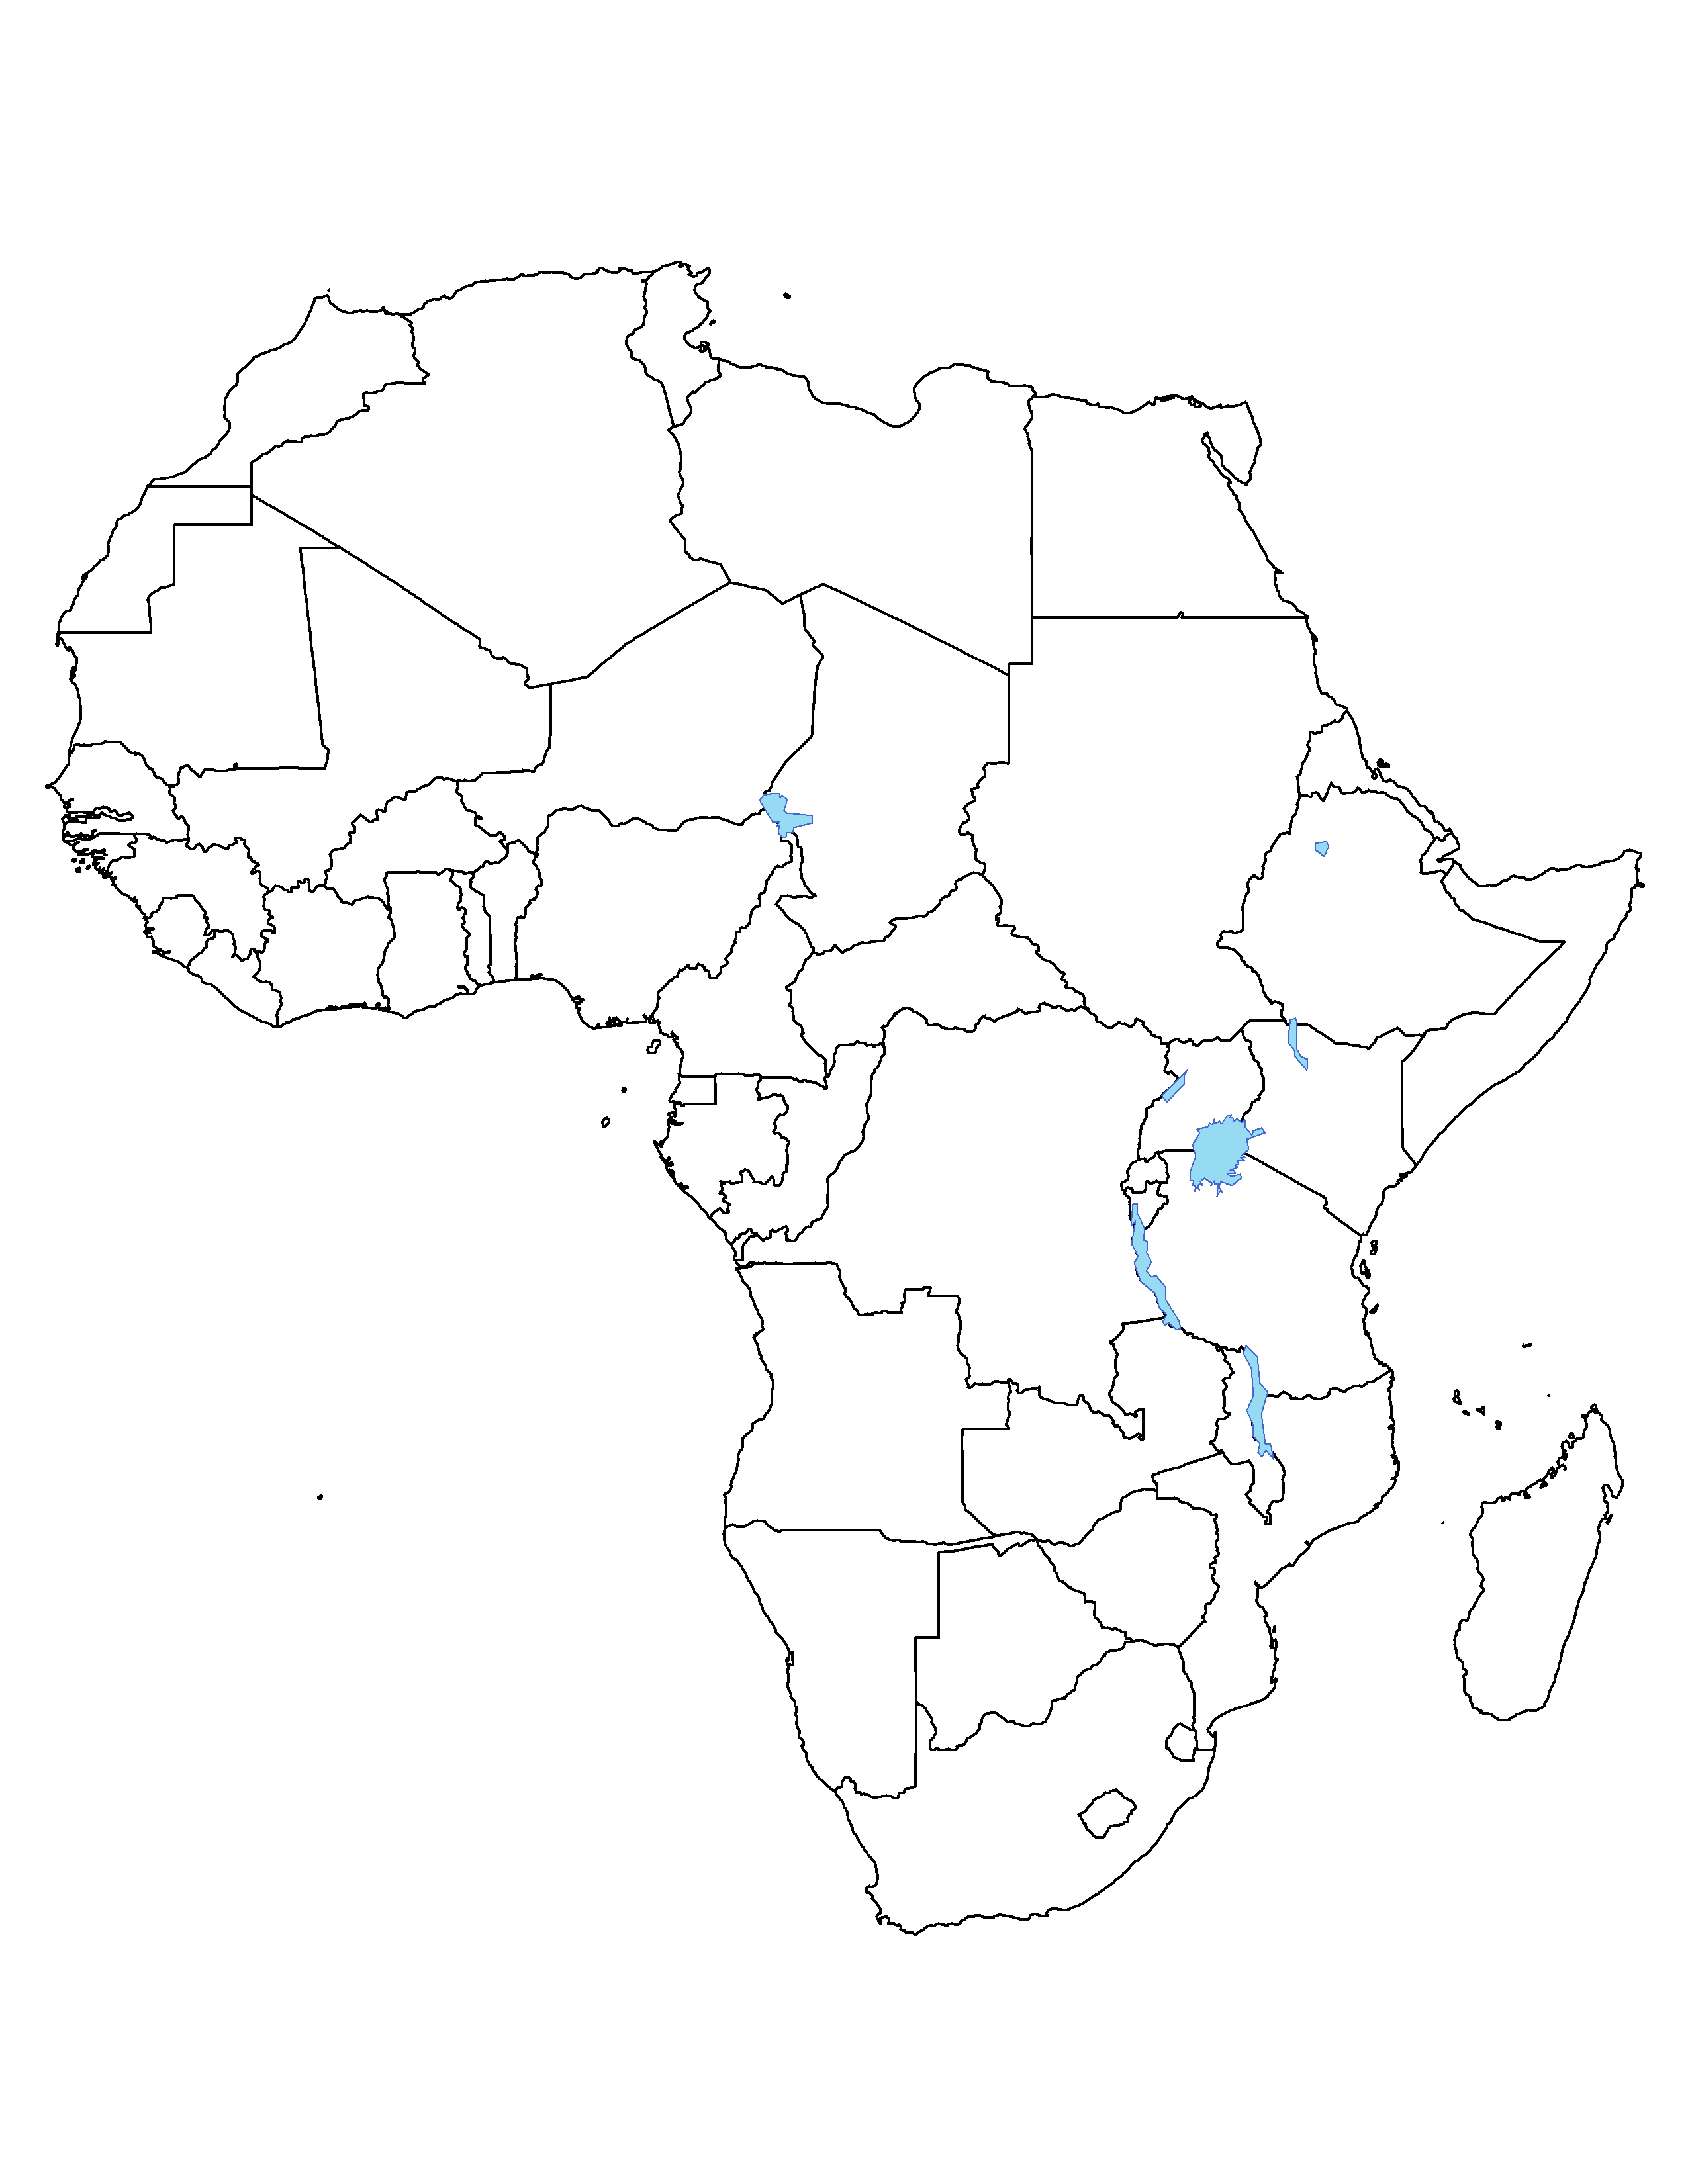 Africa Political Outline Map